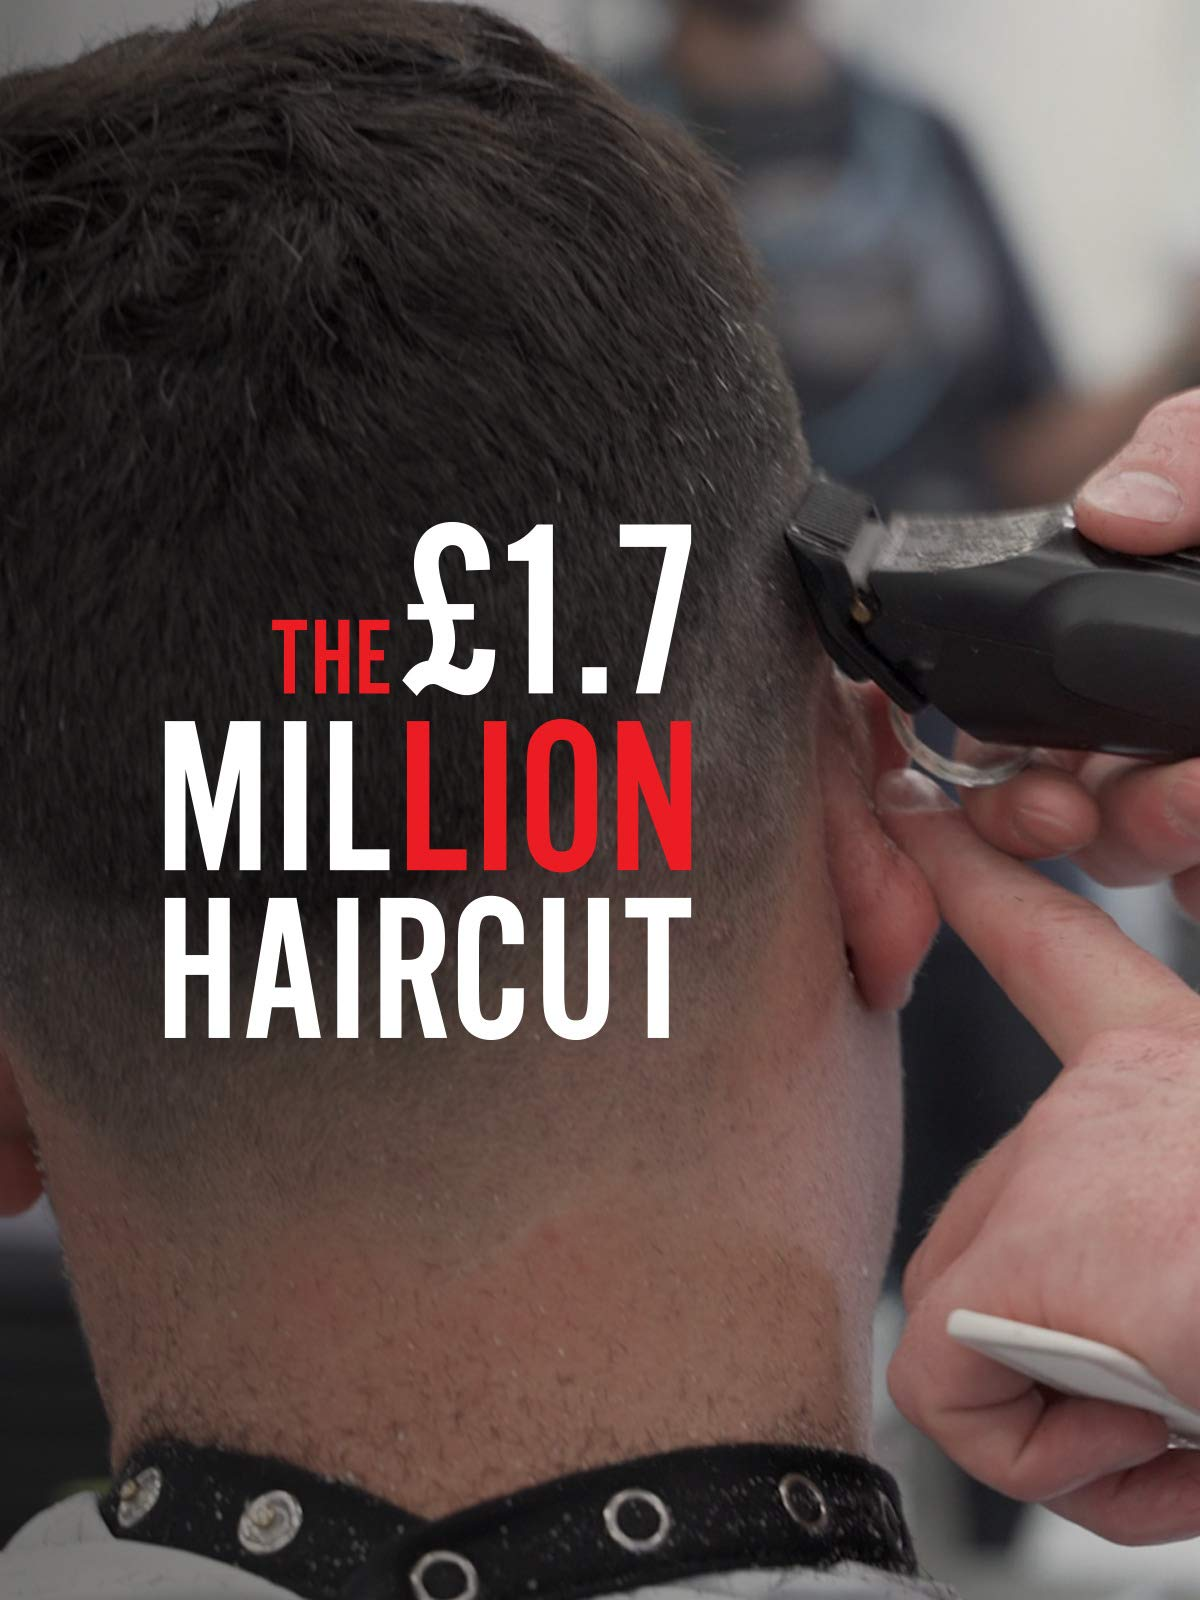 The 1.7 Million Pound Haircut